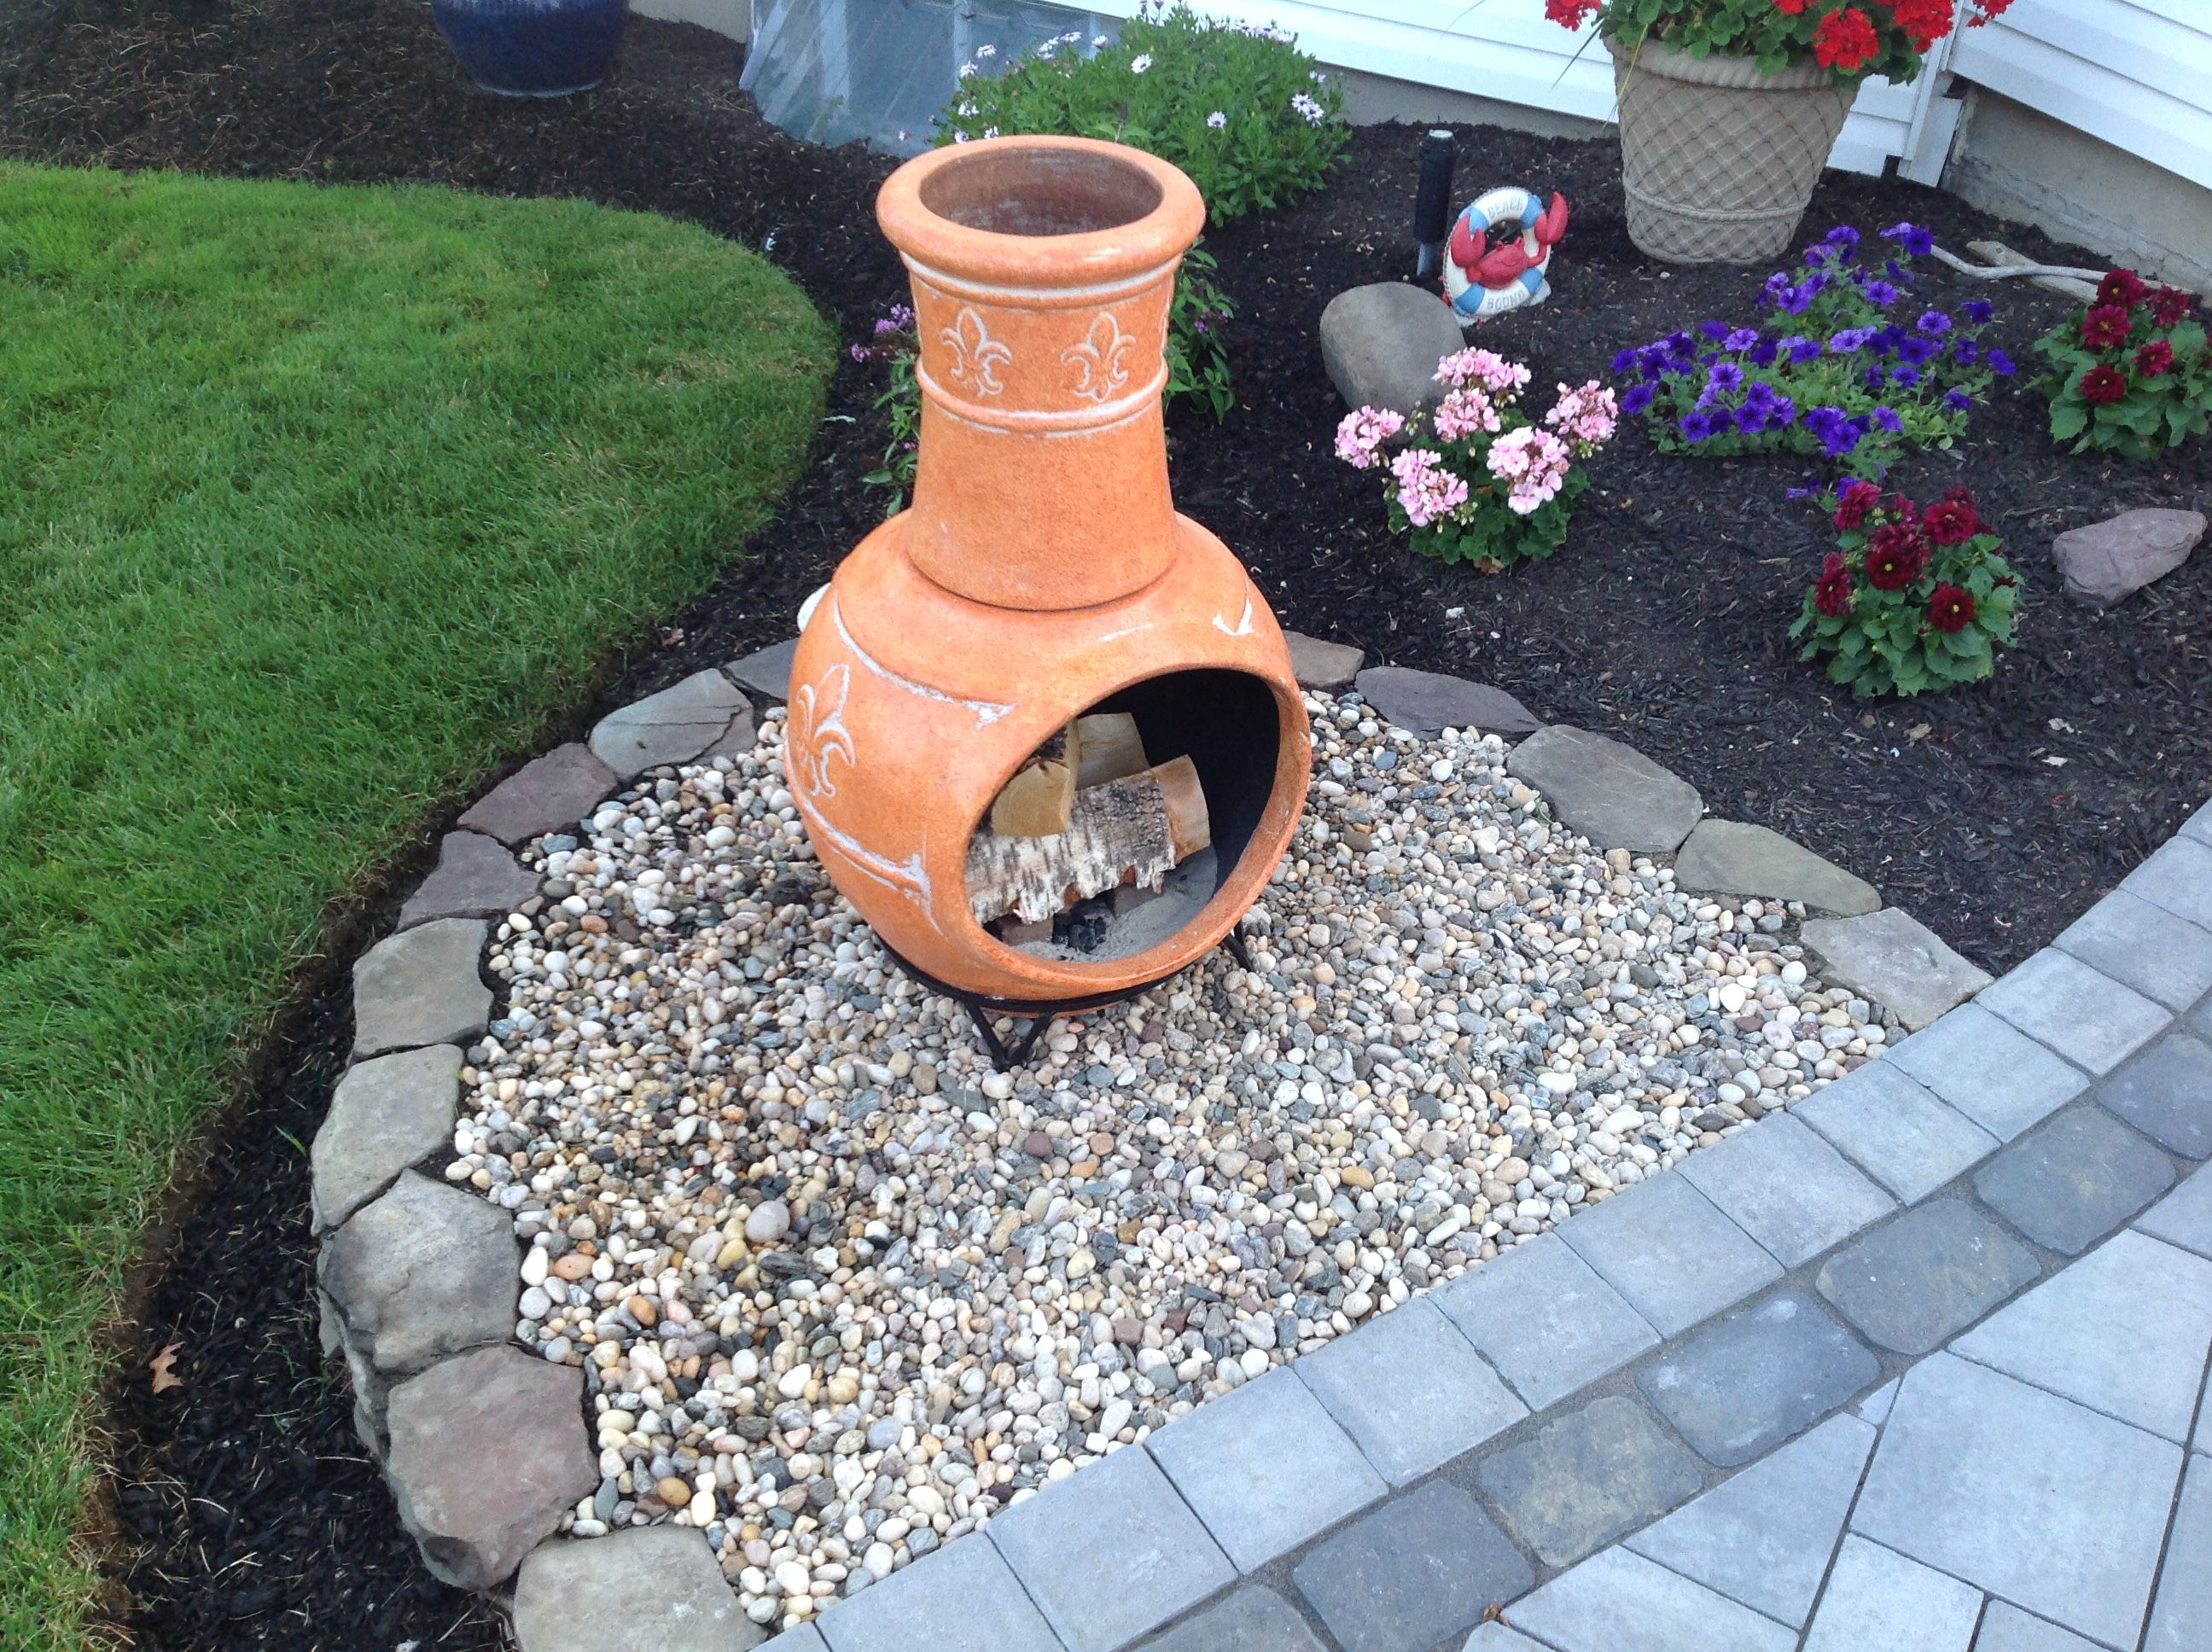 Inspiring  Best Ideas About Chiminea Fire Pit On Pinterest  Steel Fire  With Engaging Diy  Chiminea Fire Pit With Attractive Small Garden Cabins Also Garden Cour In Addition Claremont Garden And Garden Fairies For Sale As Well As Sun Yat Sen Garden Vancouver Additionally Harold Hillier Gardens From Ukpinterestcom With   Engaging  Best Ideas About Chiminea Fire Pit On Pinterest  Steel Fire  With Attractive Diy  Chiminea Fire Pit And Inspiring Small Garden Cabins Also Garden Cour In Addition Claremont Garden From Ukpinterestcom